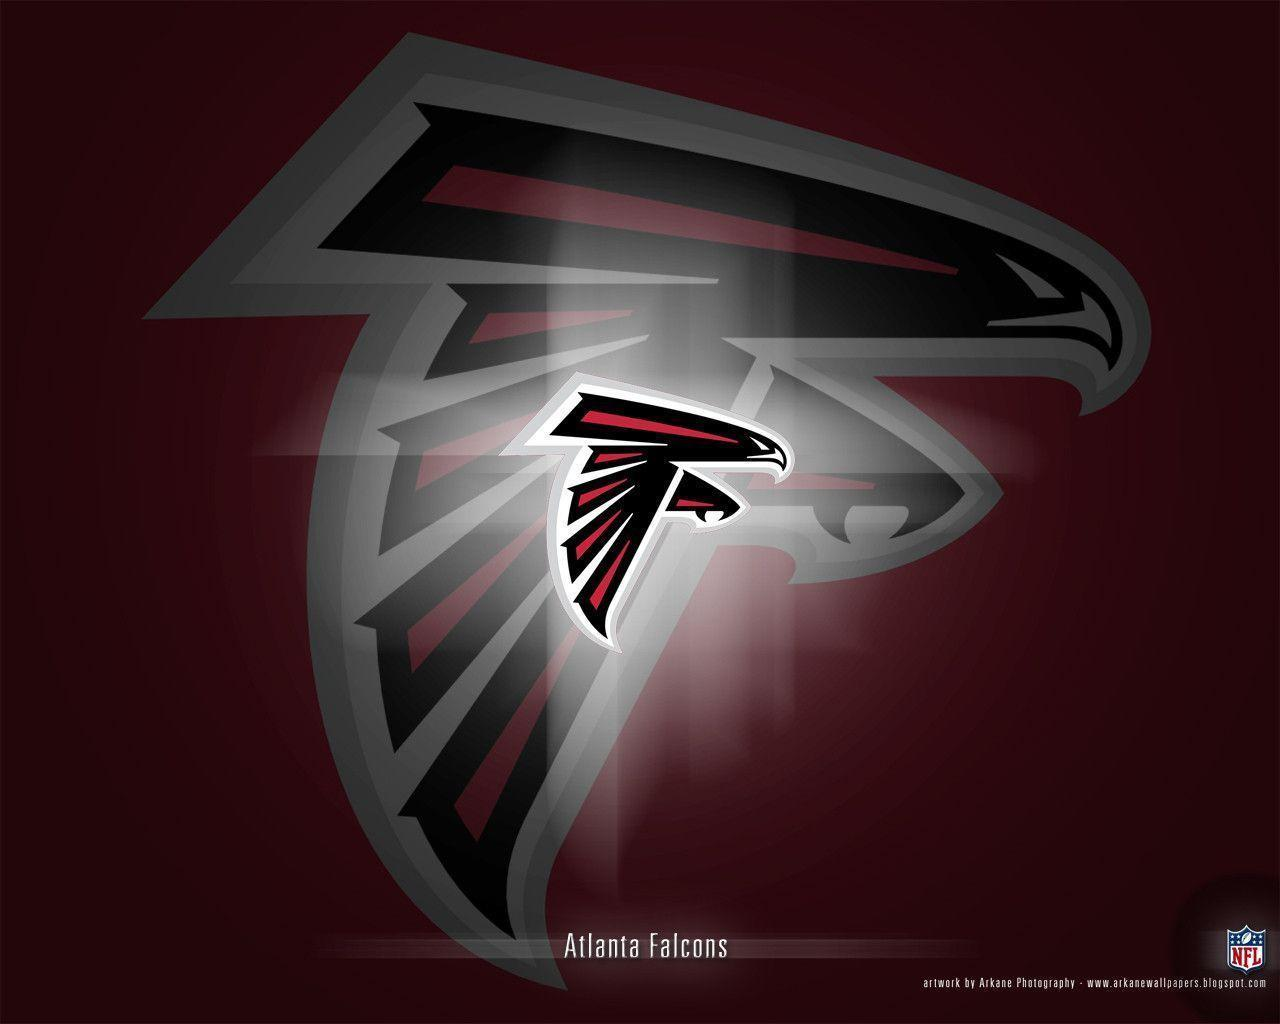 Baltimore Ravens 3d Wallpaper Atlanta Falcons Desktop Wallpapers Wallpaper Cave